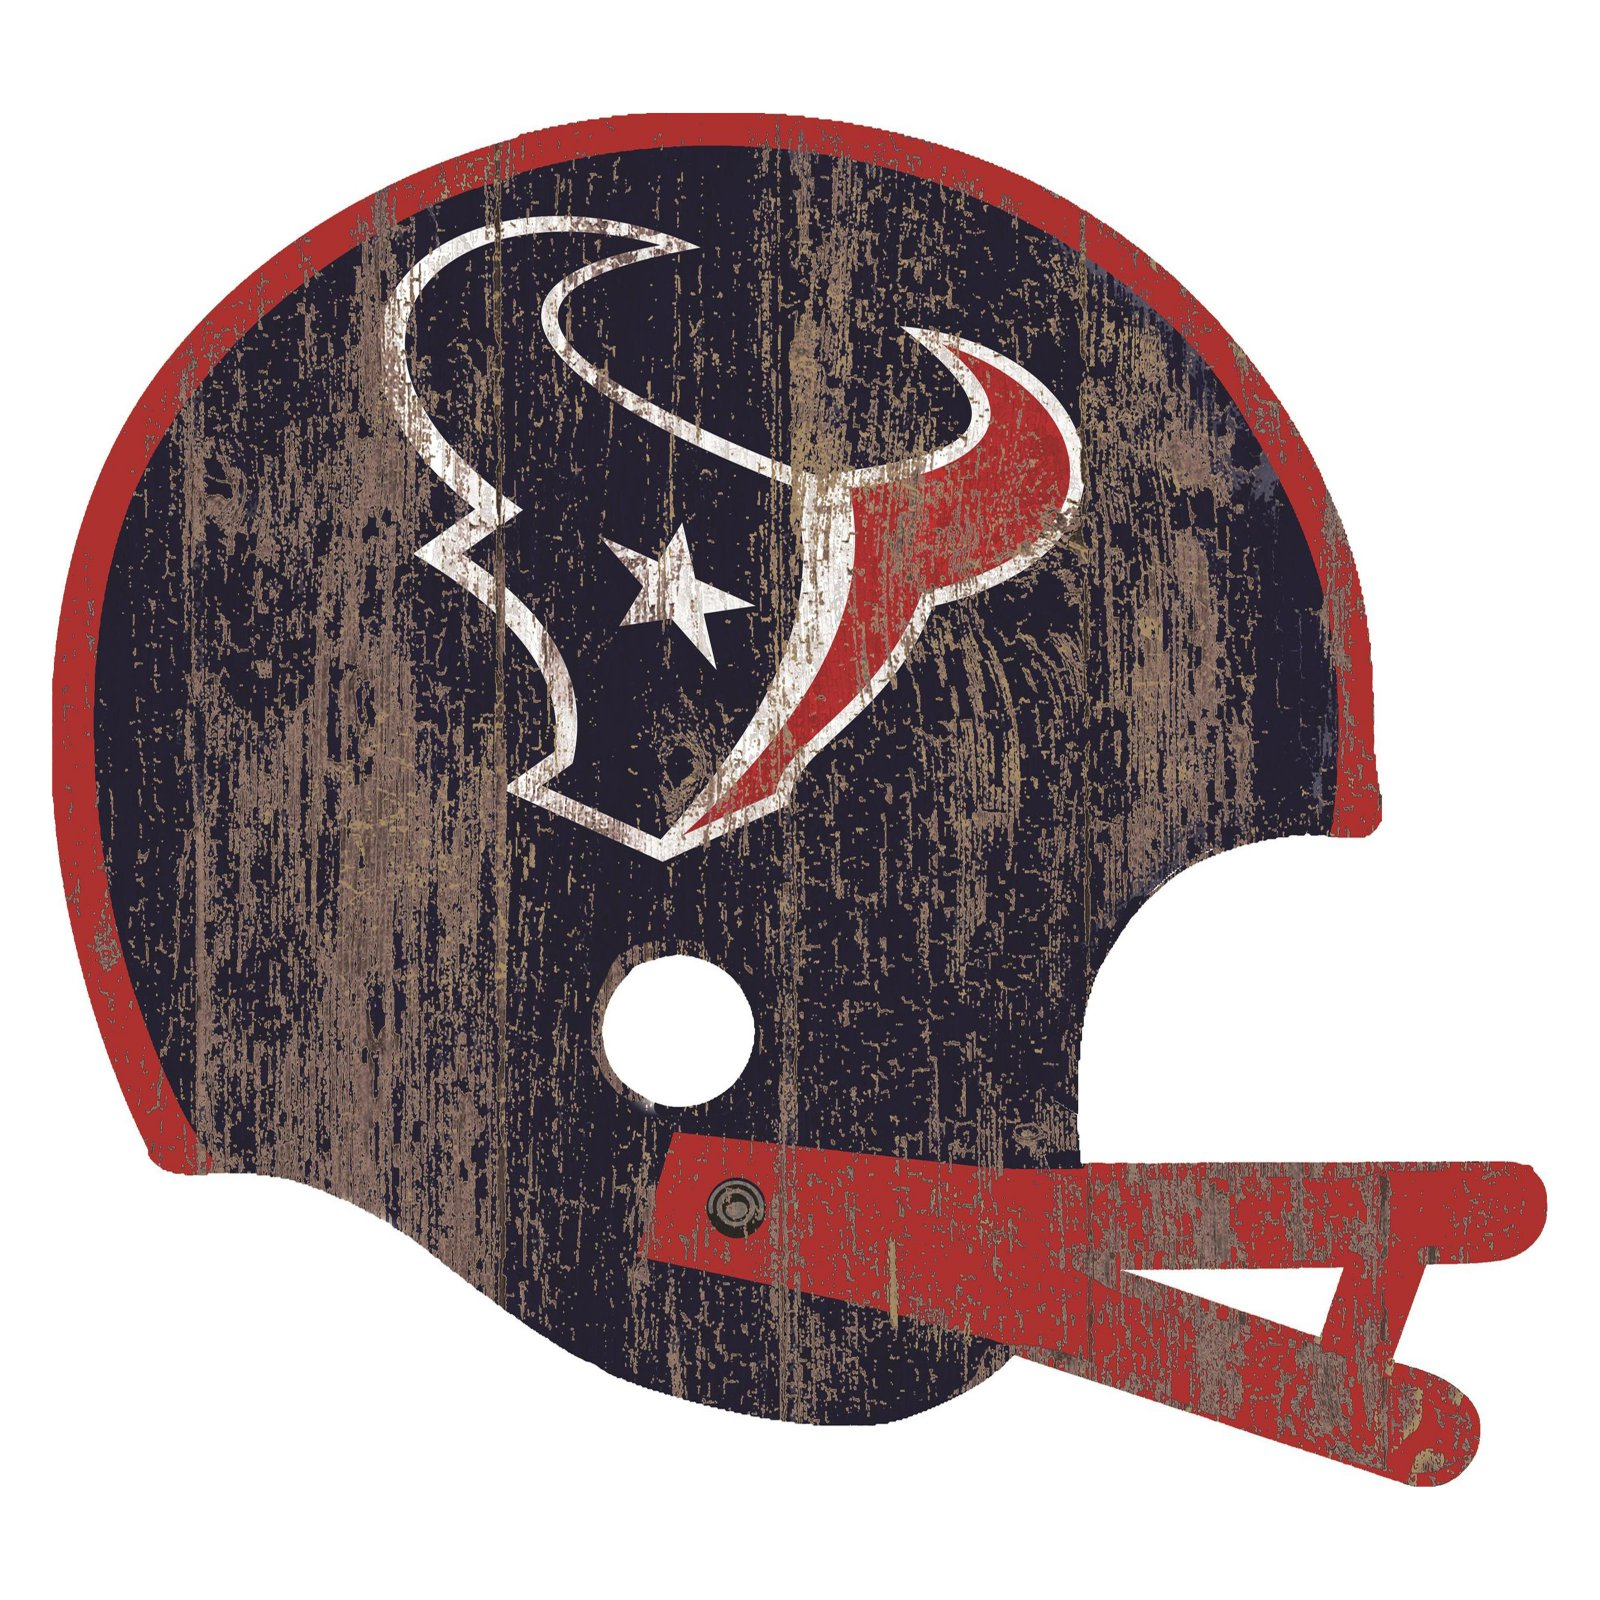 Fan Creations NFL Distressed Helmet Cutout Wall Art